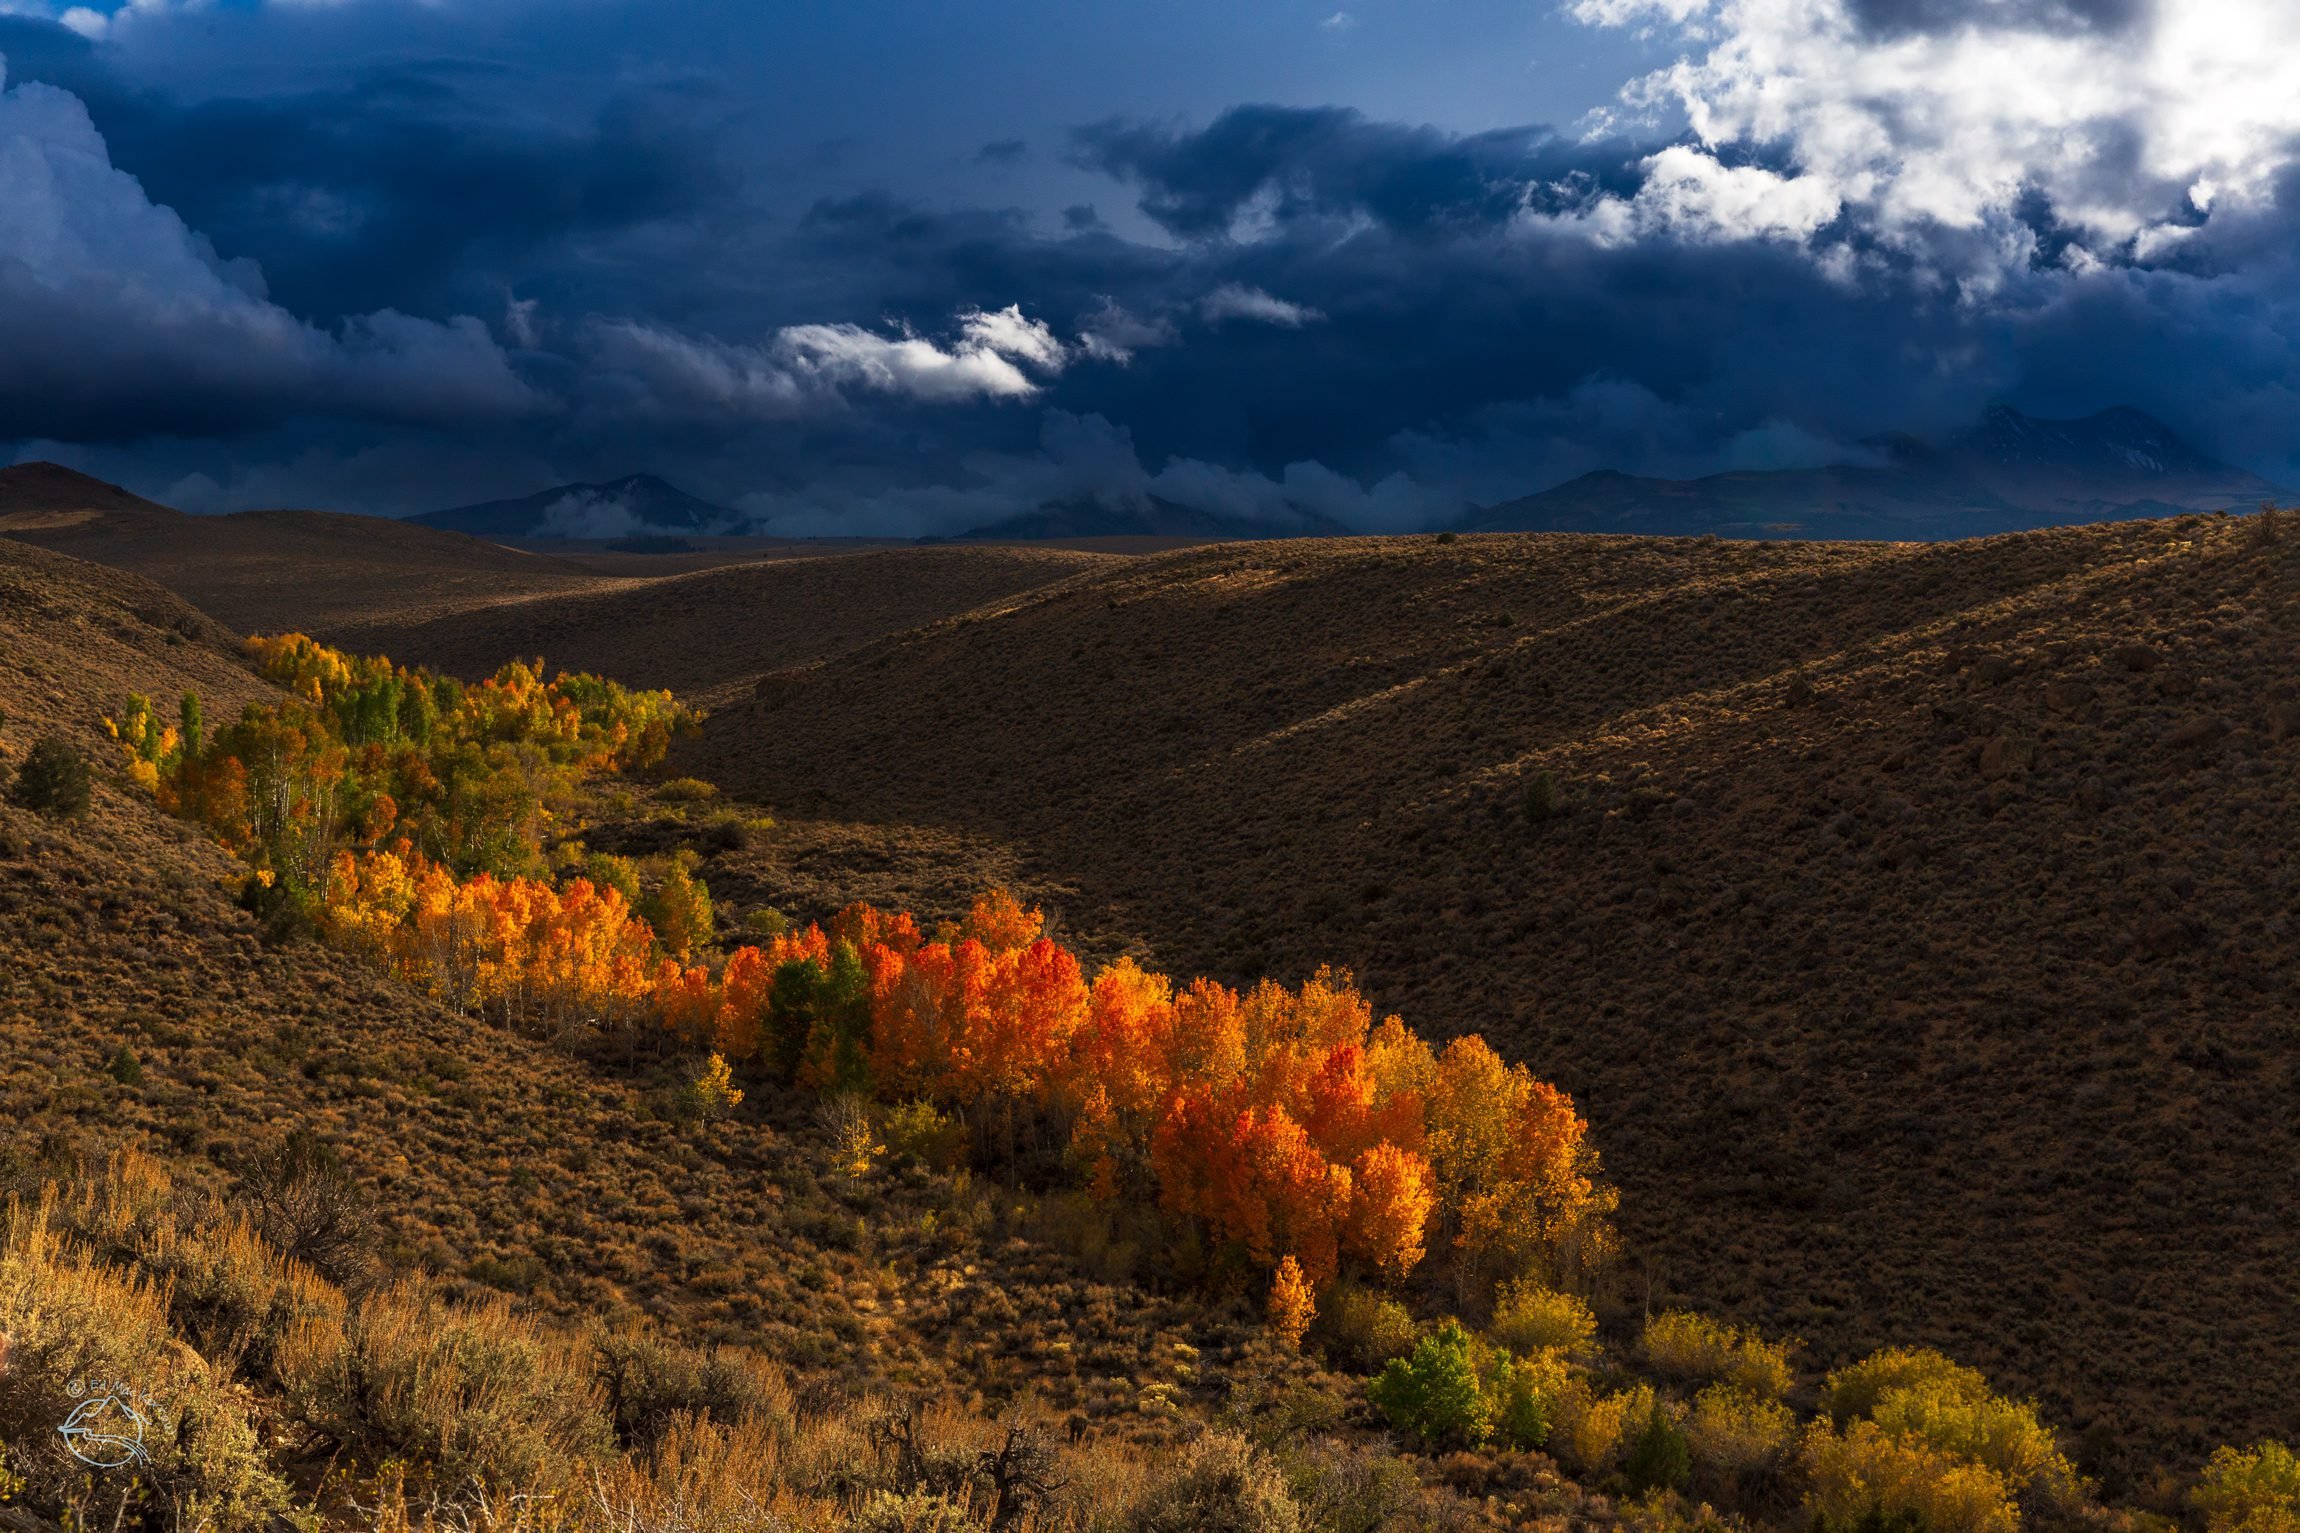 Red, orange, and yellow aspen trees in the Sierra Nevada.